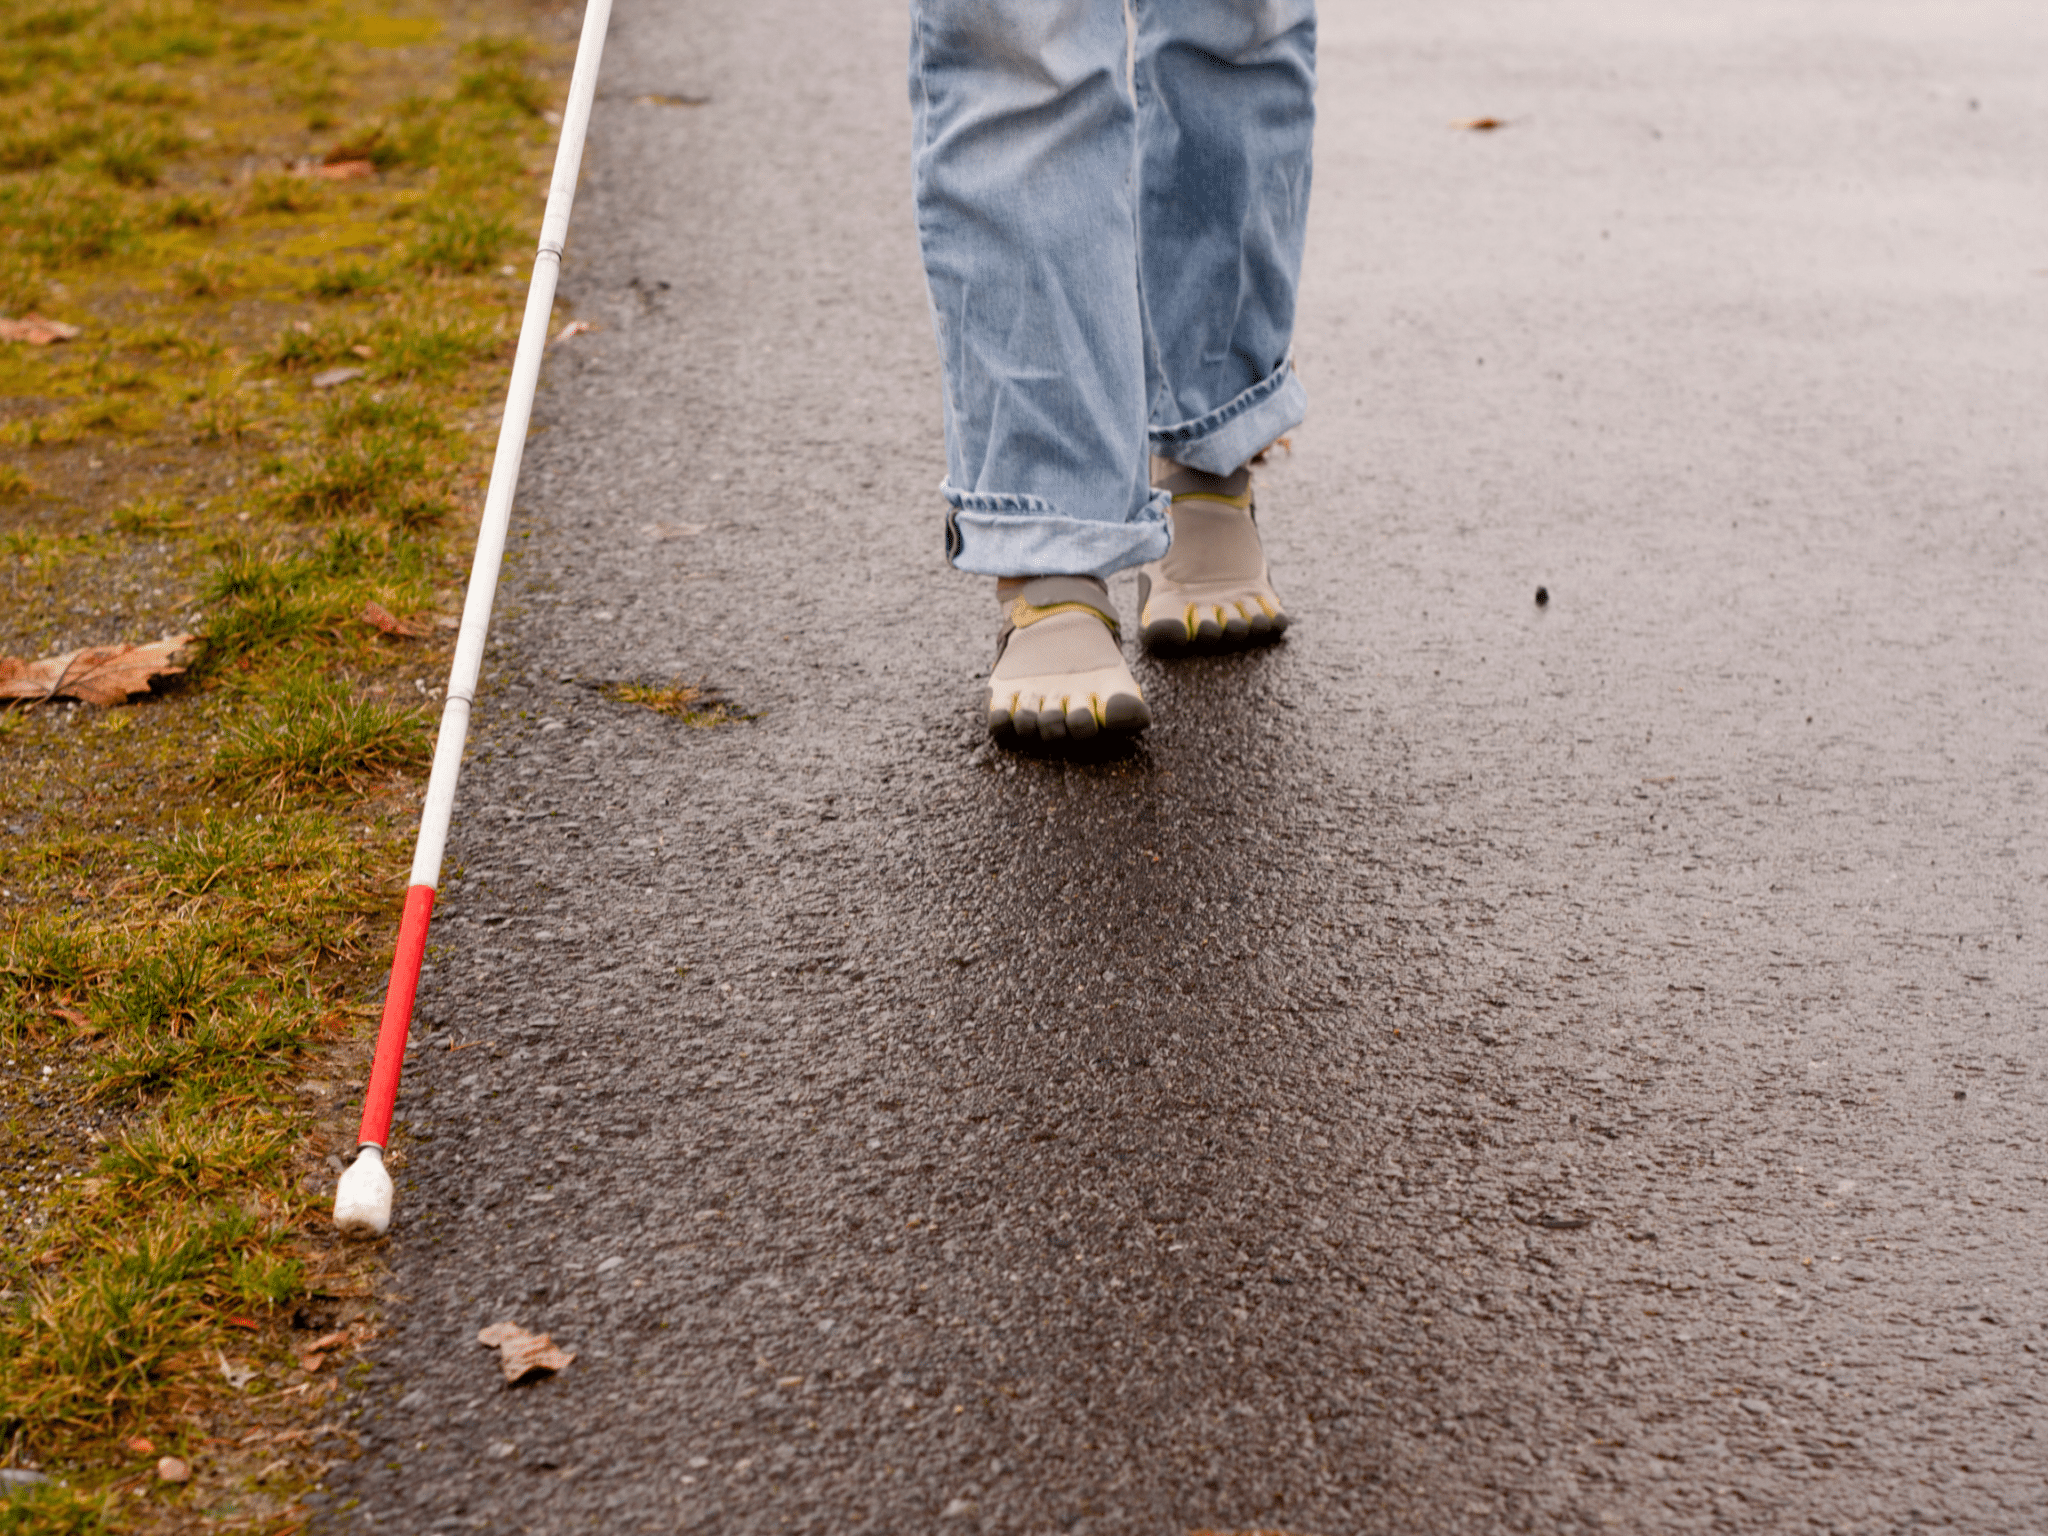 A person walking towards forward on pavement in jeans and gray shoes with a white cane extended in front of them on the edge of the pavement and the grass on the left.